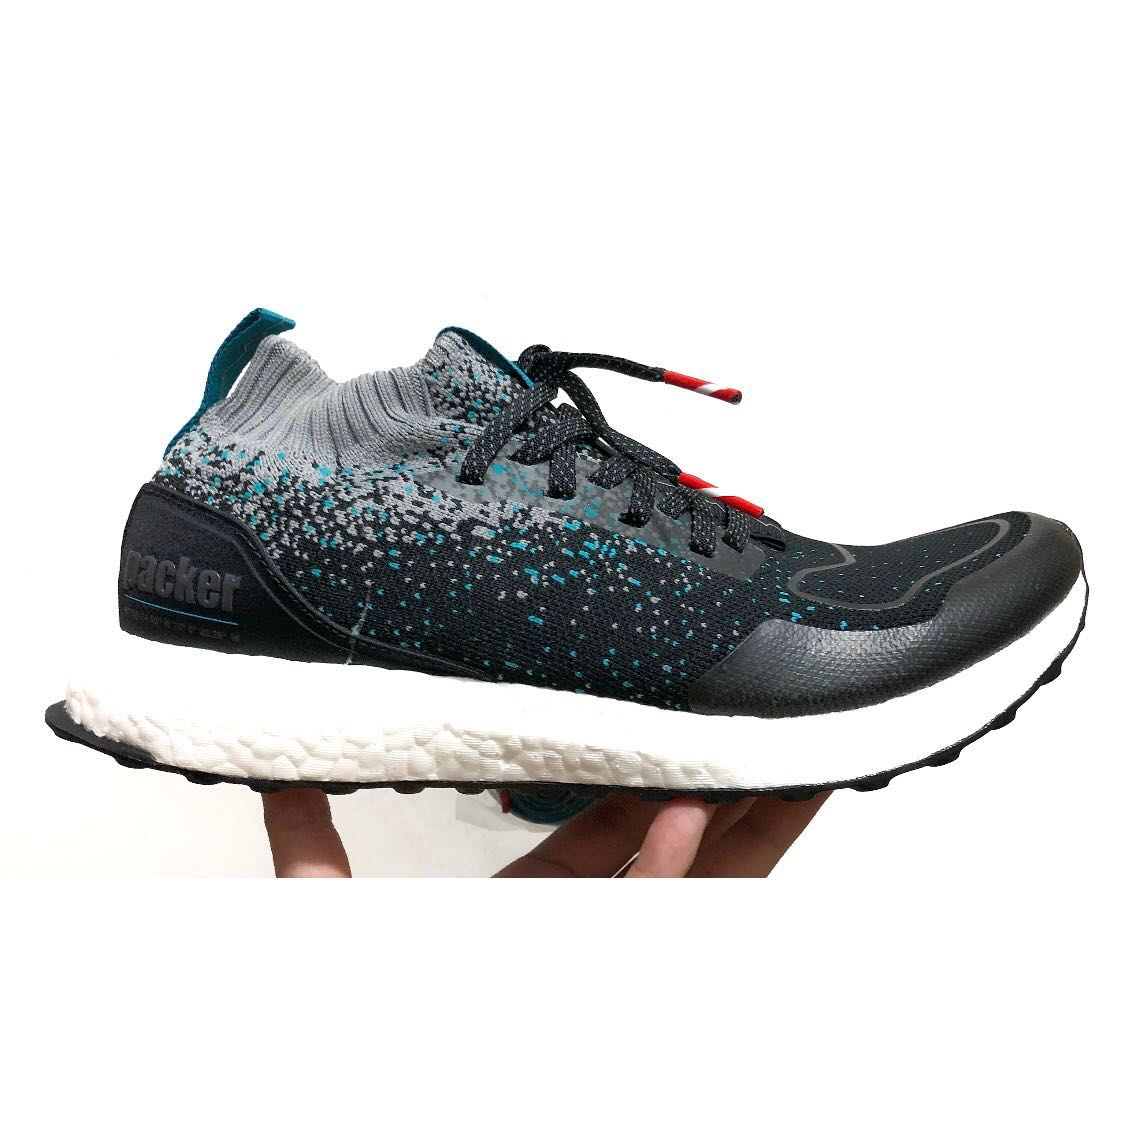 6058fe37f 🌊 UNUSED Adidas Consortium X Packer X Solebox Ultraboost Mid CM7882 ...